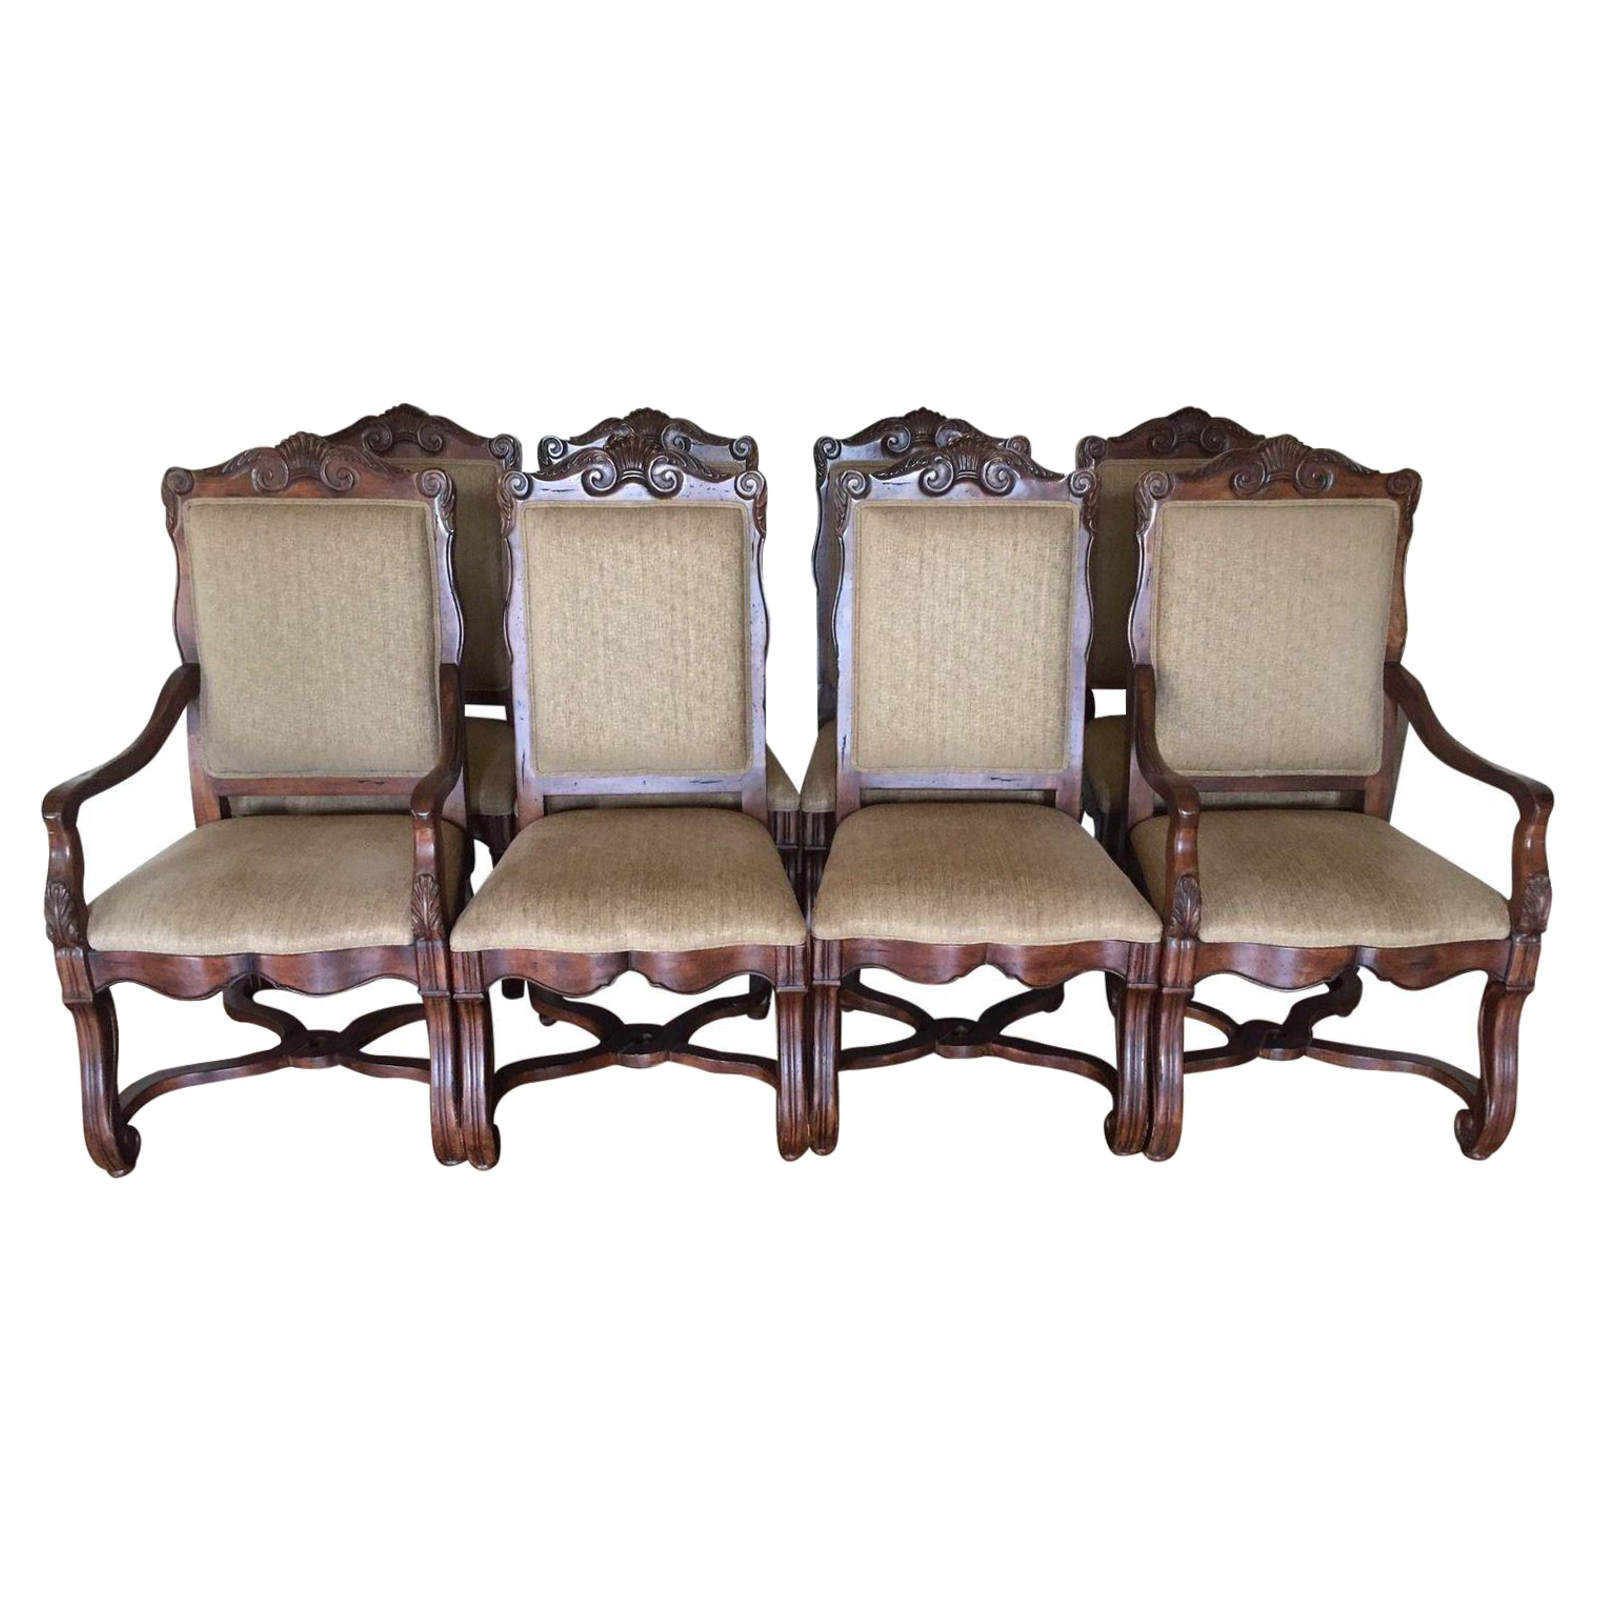 Country Dining Chairs Hekman Loire Valley French Country Dining Chairs Set Of